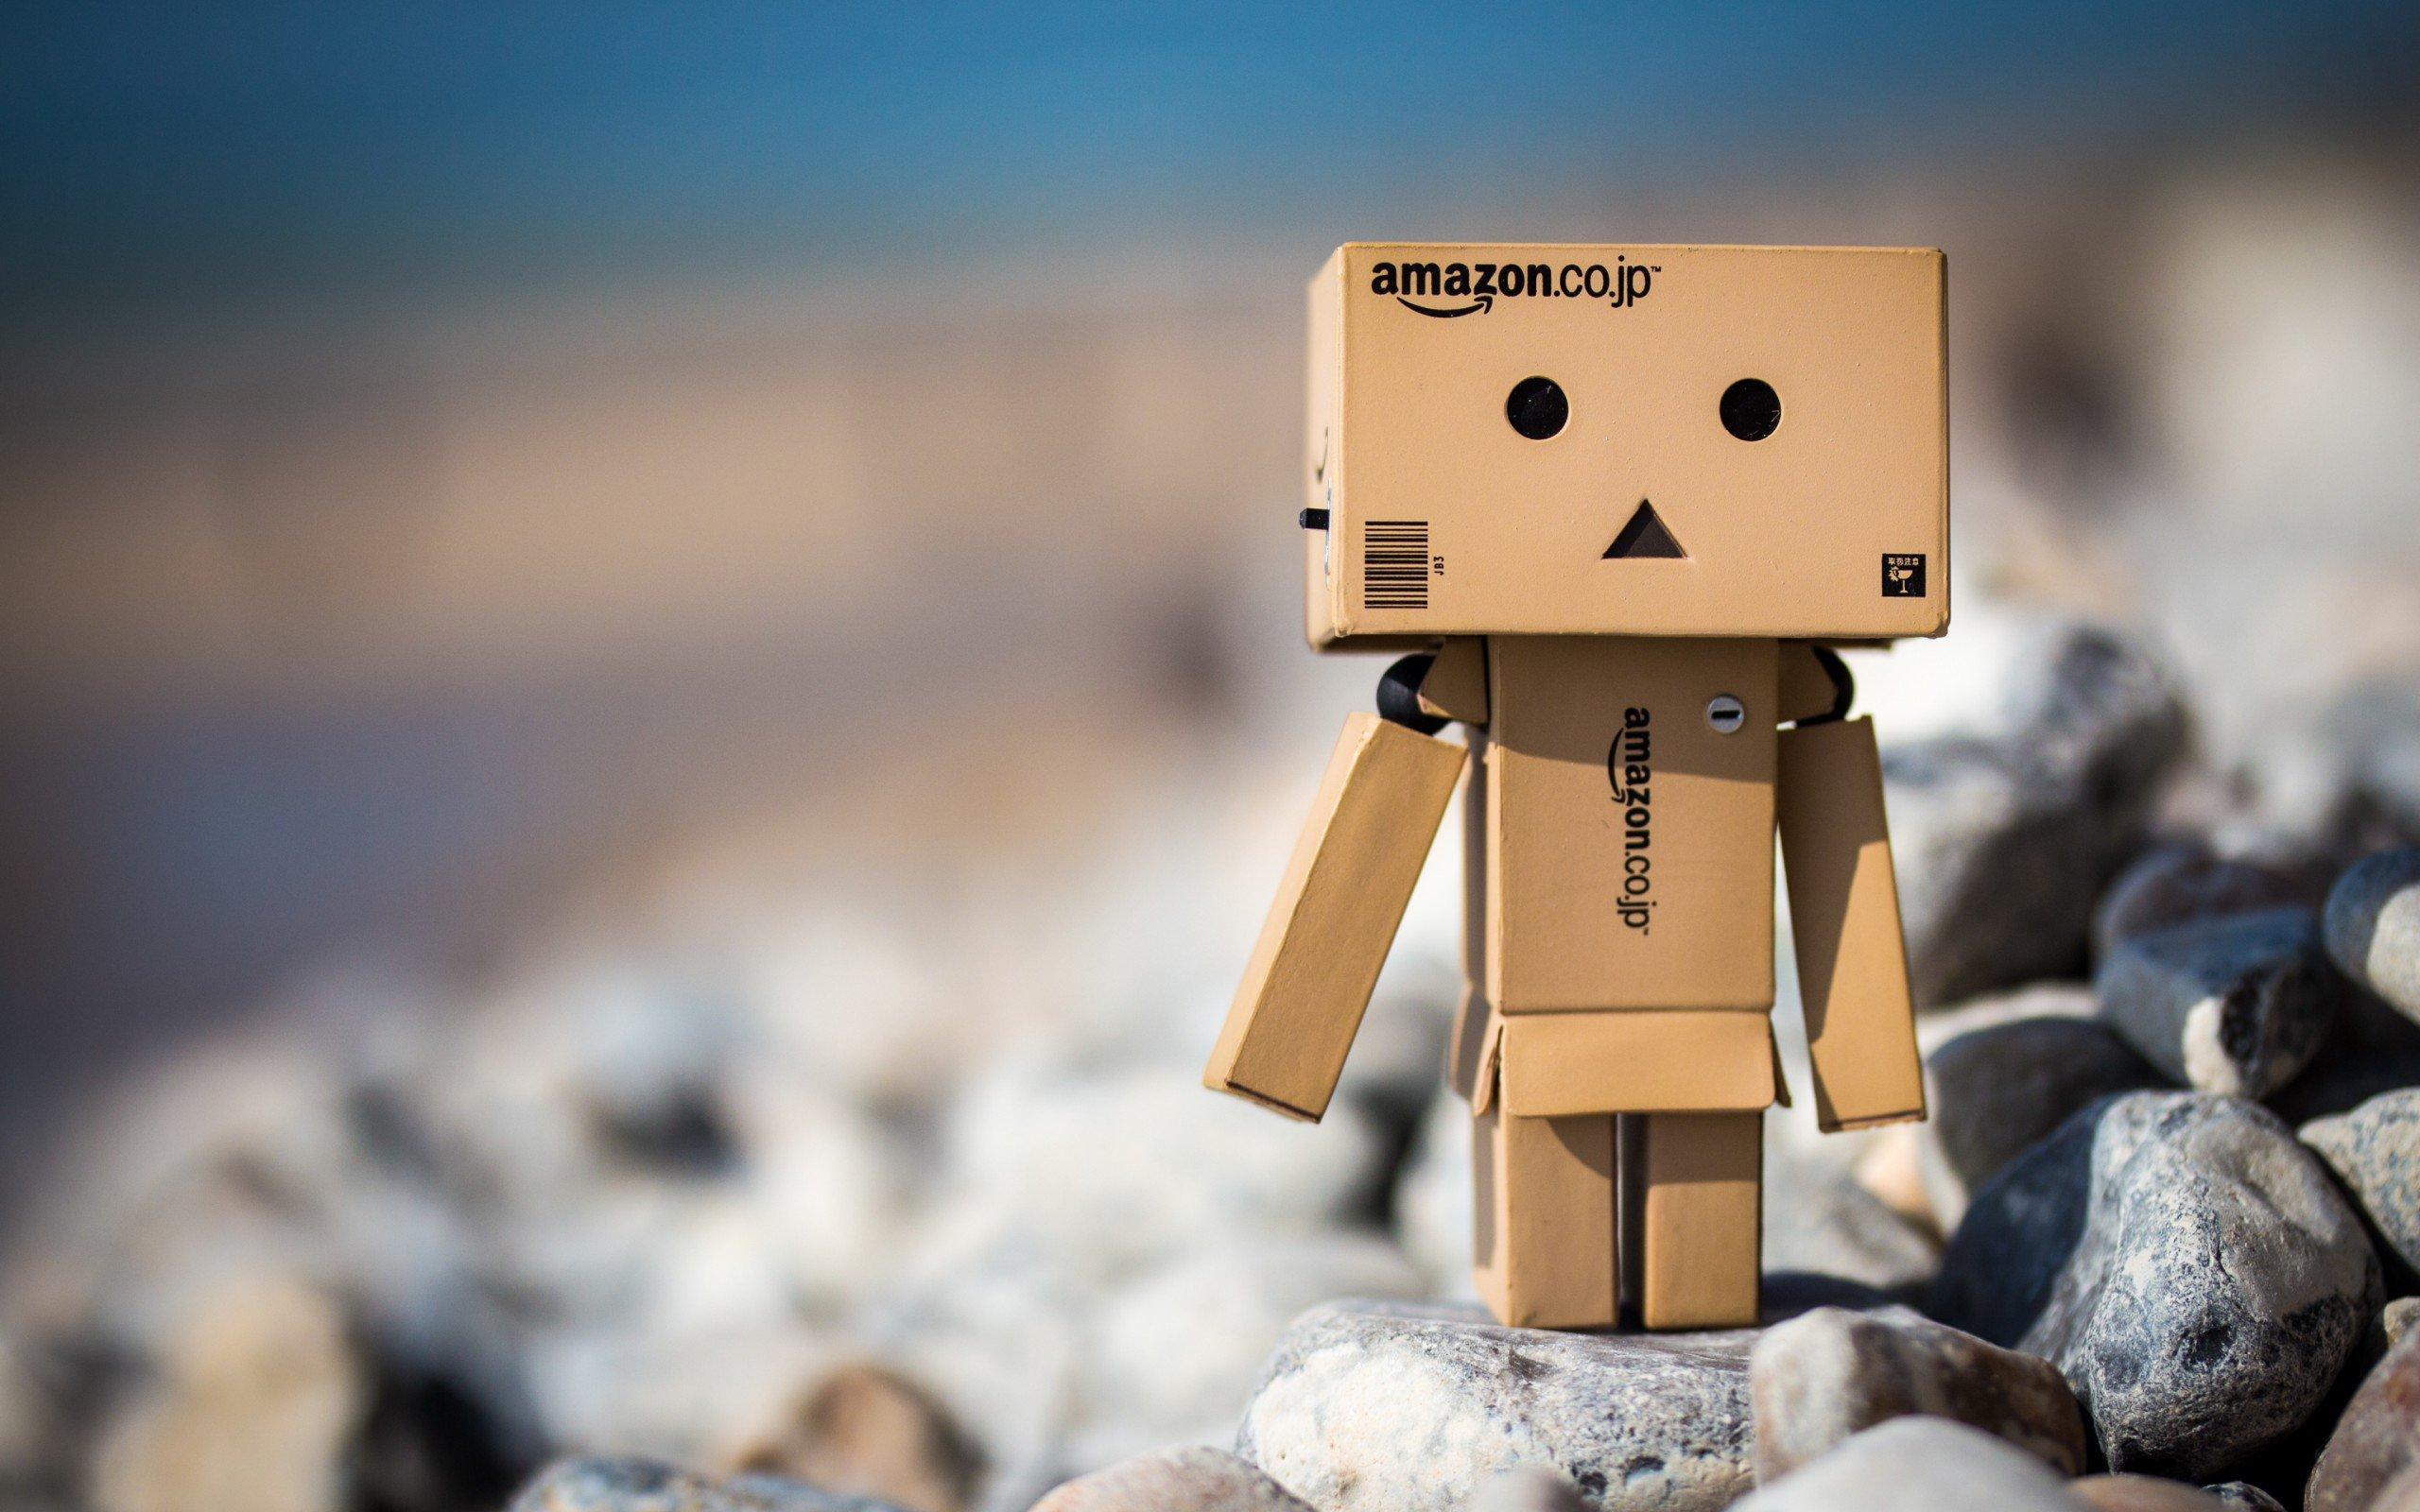 cardboard robot wallpaper hd - photo #6